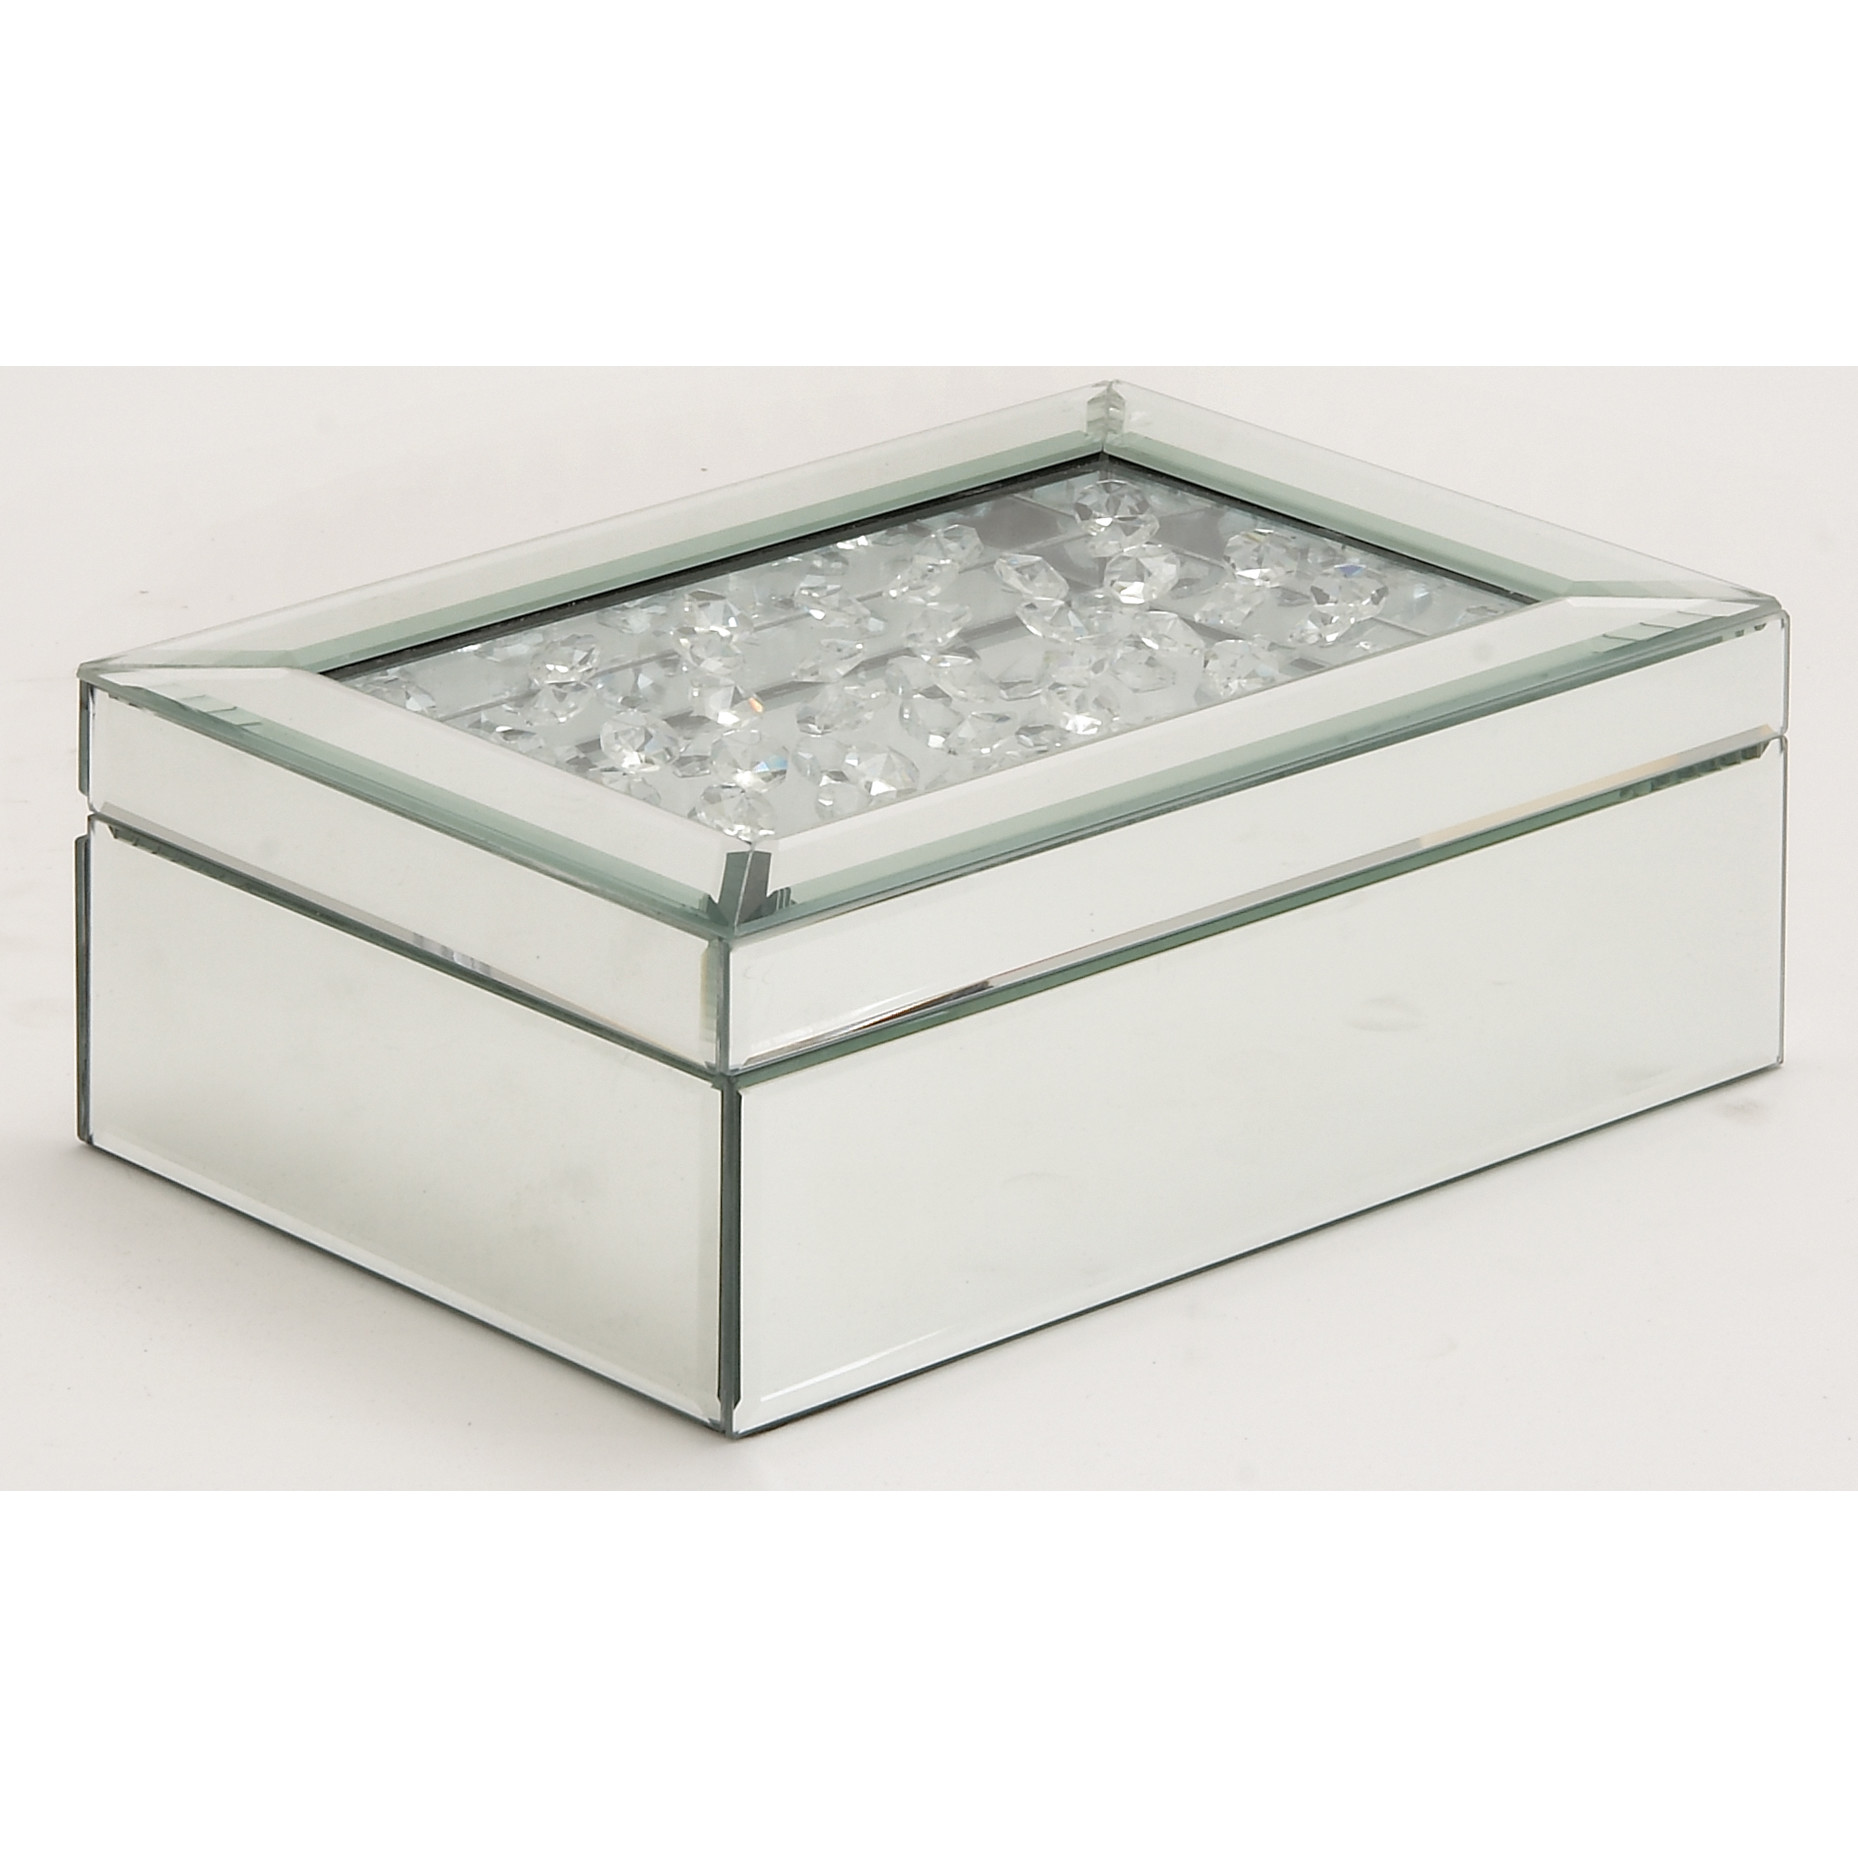 690004 mirrored Jewelry Box